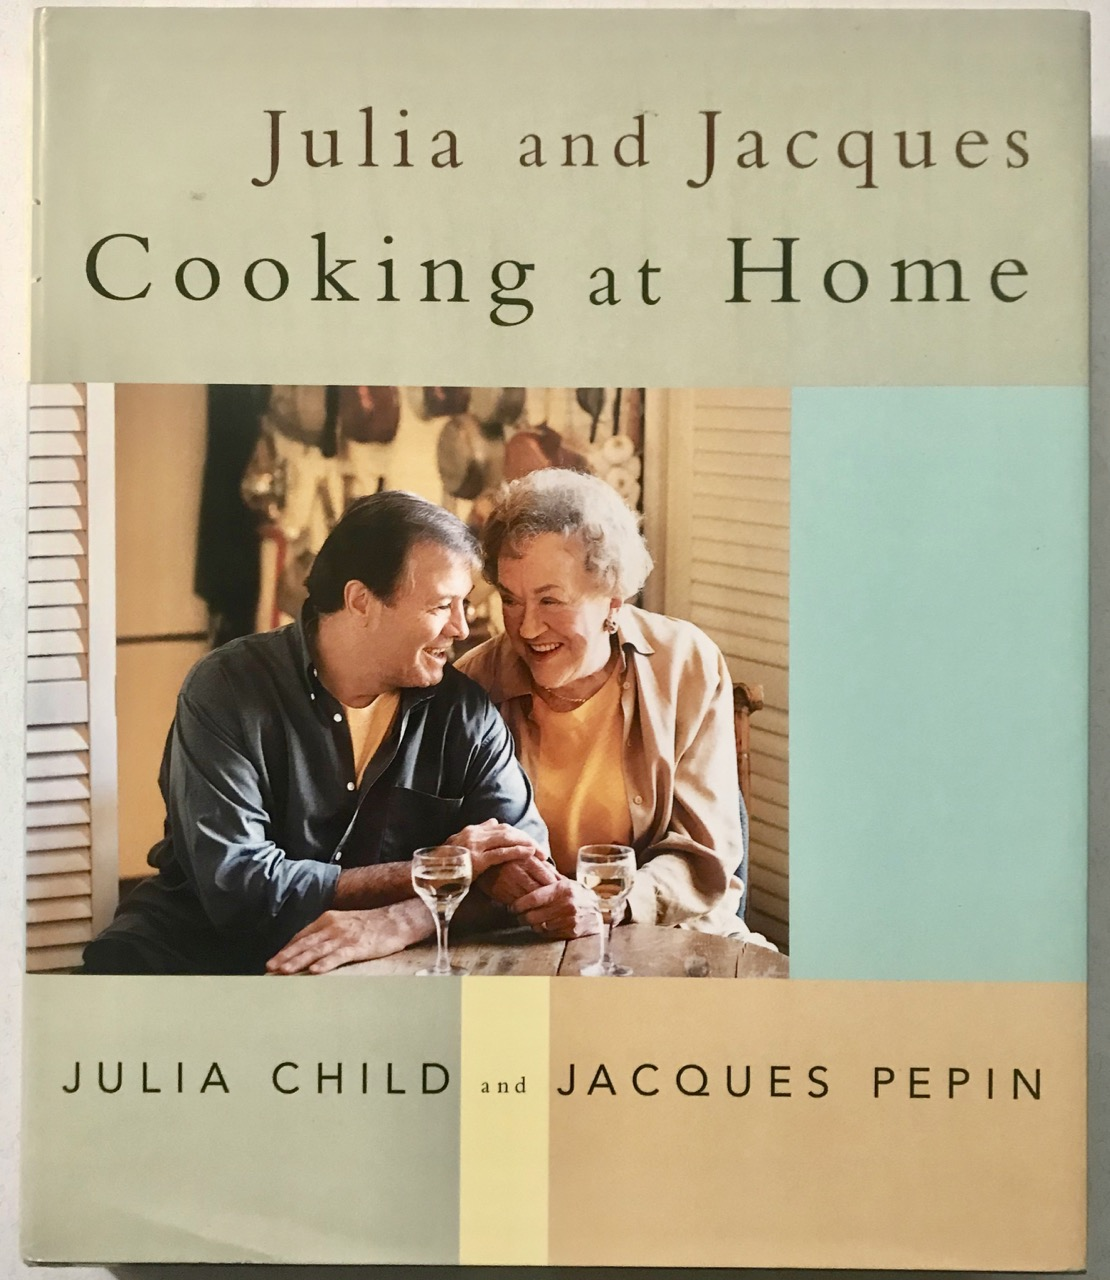 Image for Julia and Jacques Cooking at Home: A Cookbook [Signed]